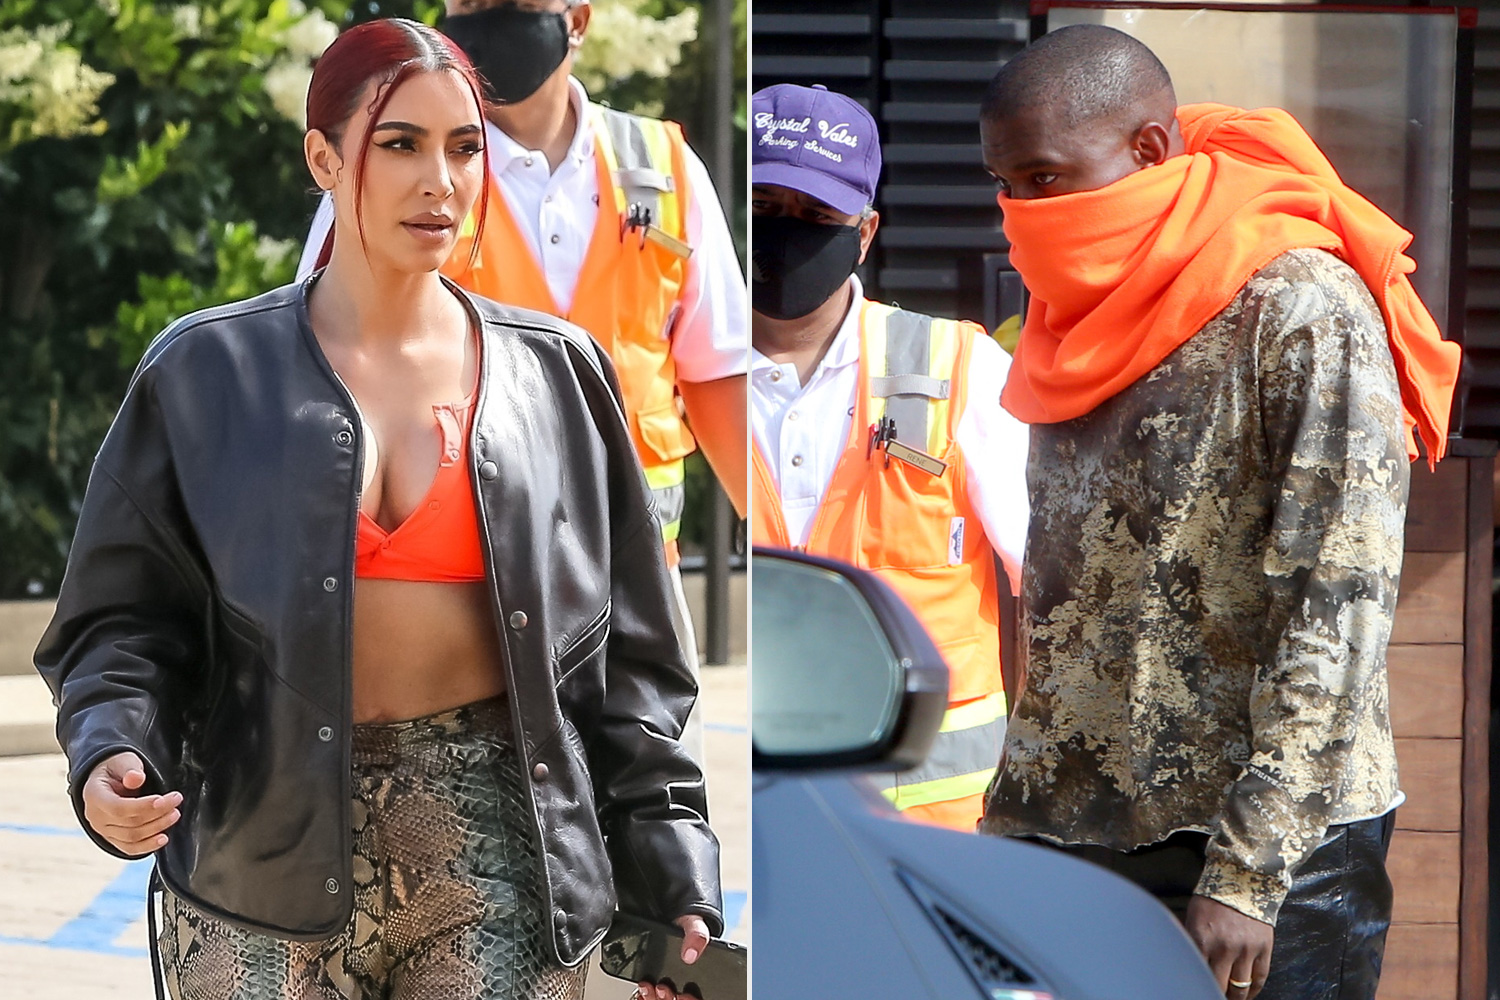 Kim Kardashian West Shows Off Her New Red Hair As She And Kanye West Dine At Nobu In Malibu.